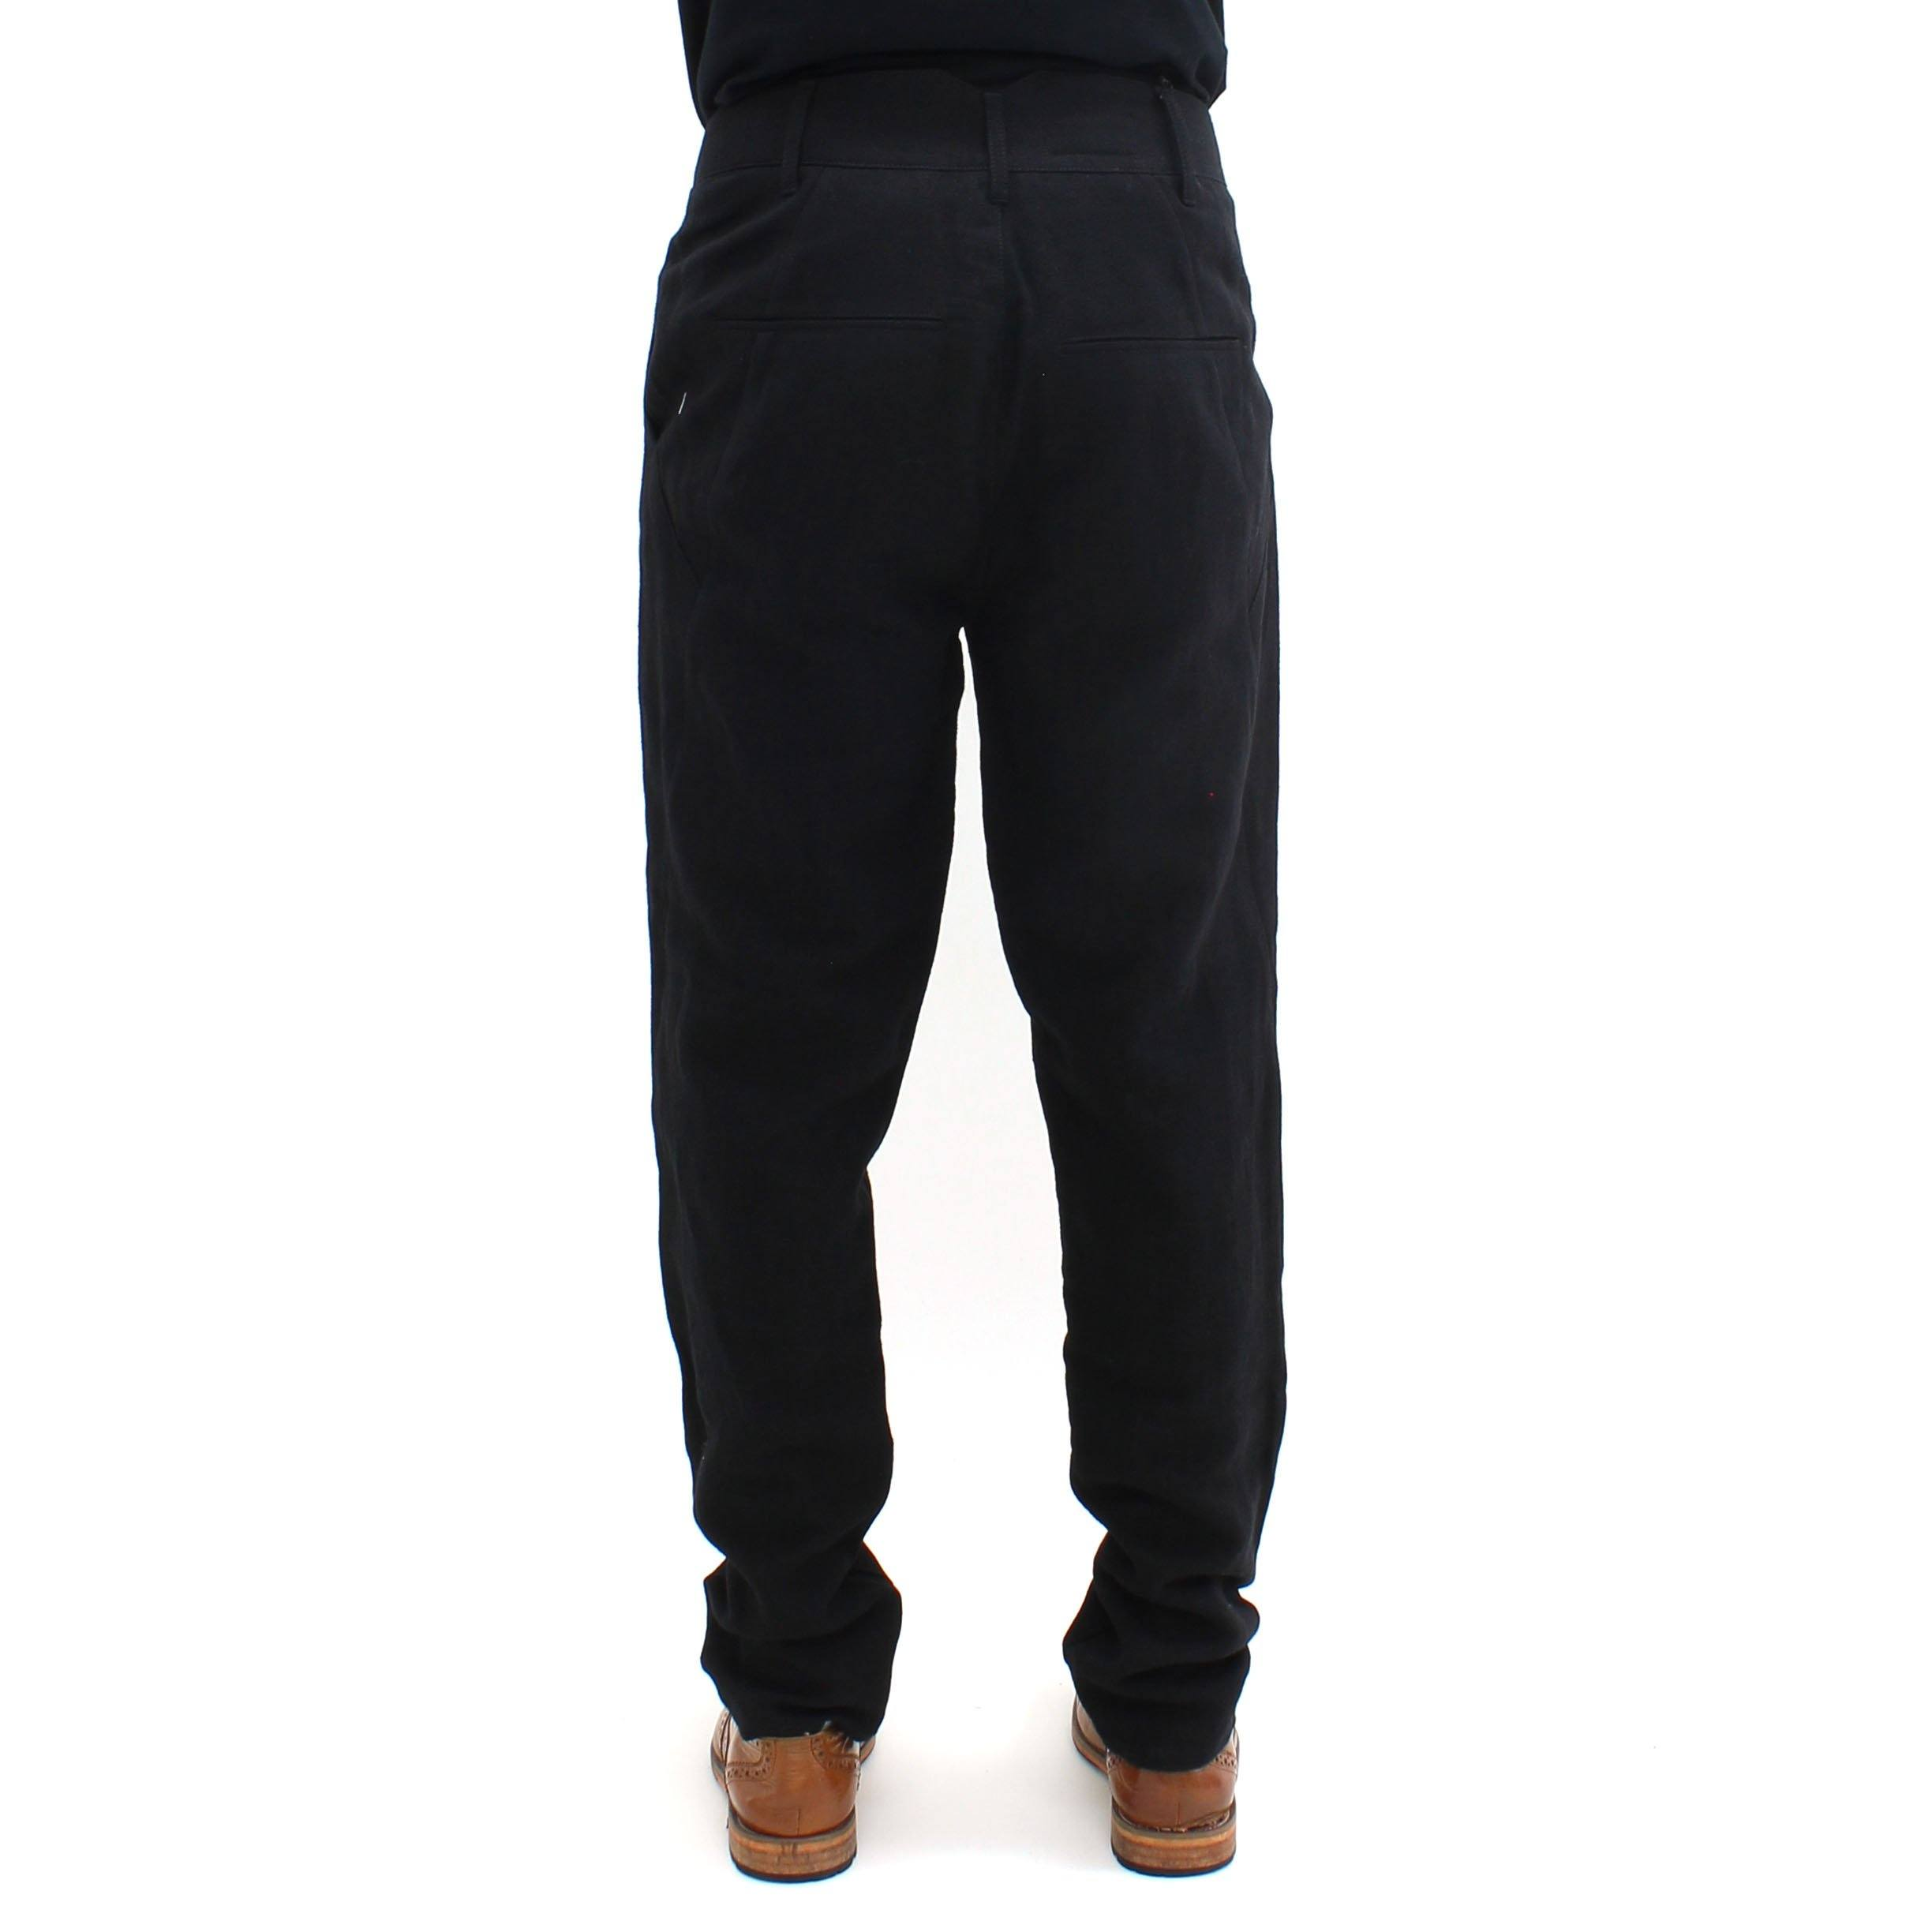 Hannibal Crushed Cotton Trouser Black